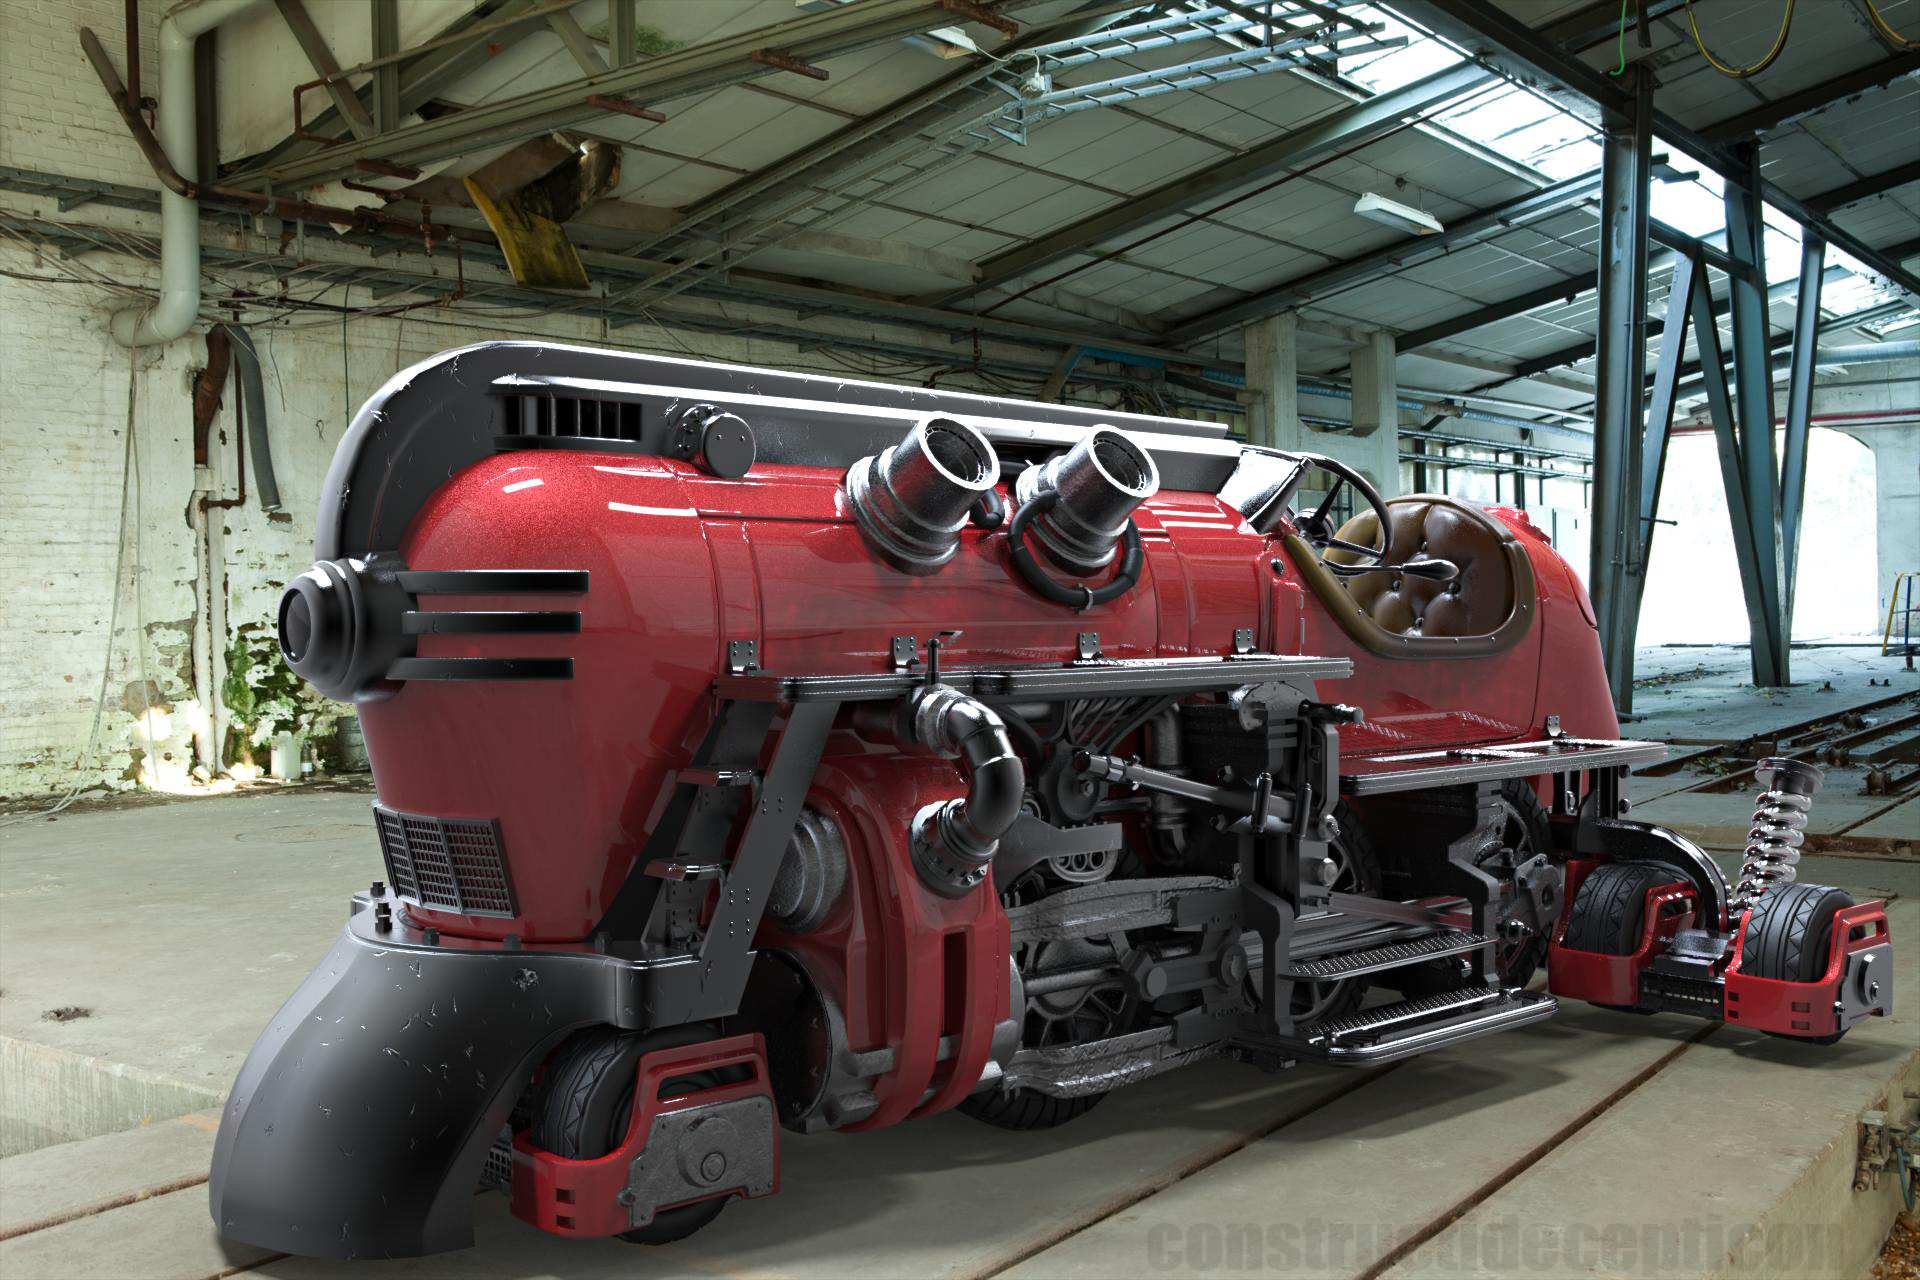 The Futuristic Steam Train of Our Dreams